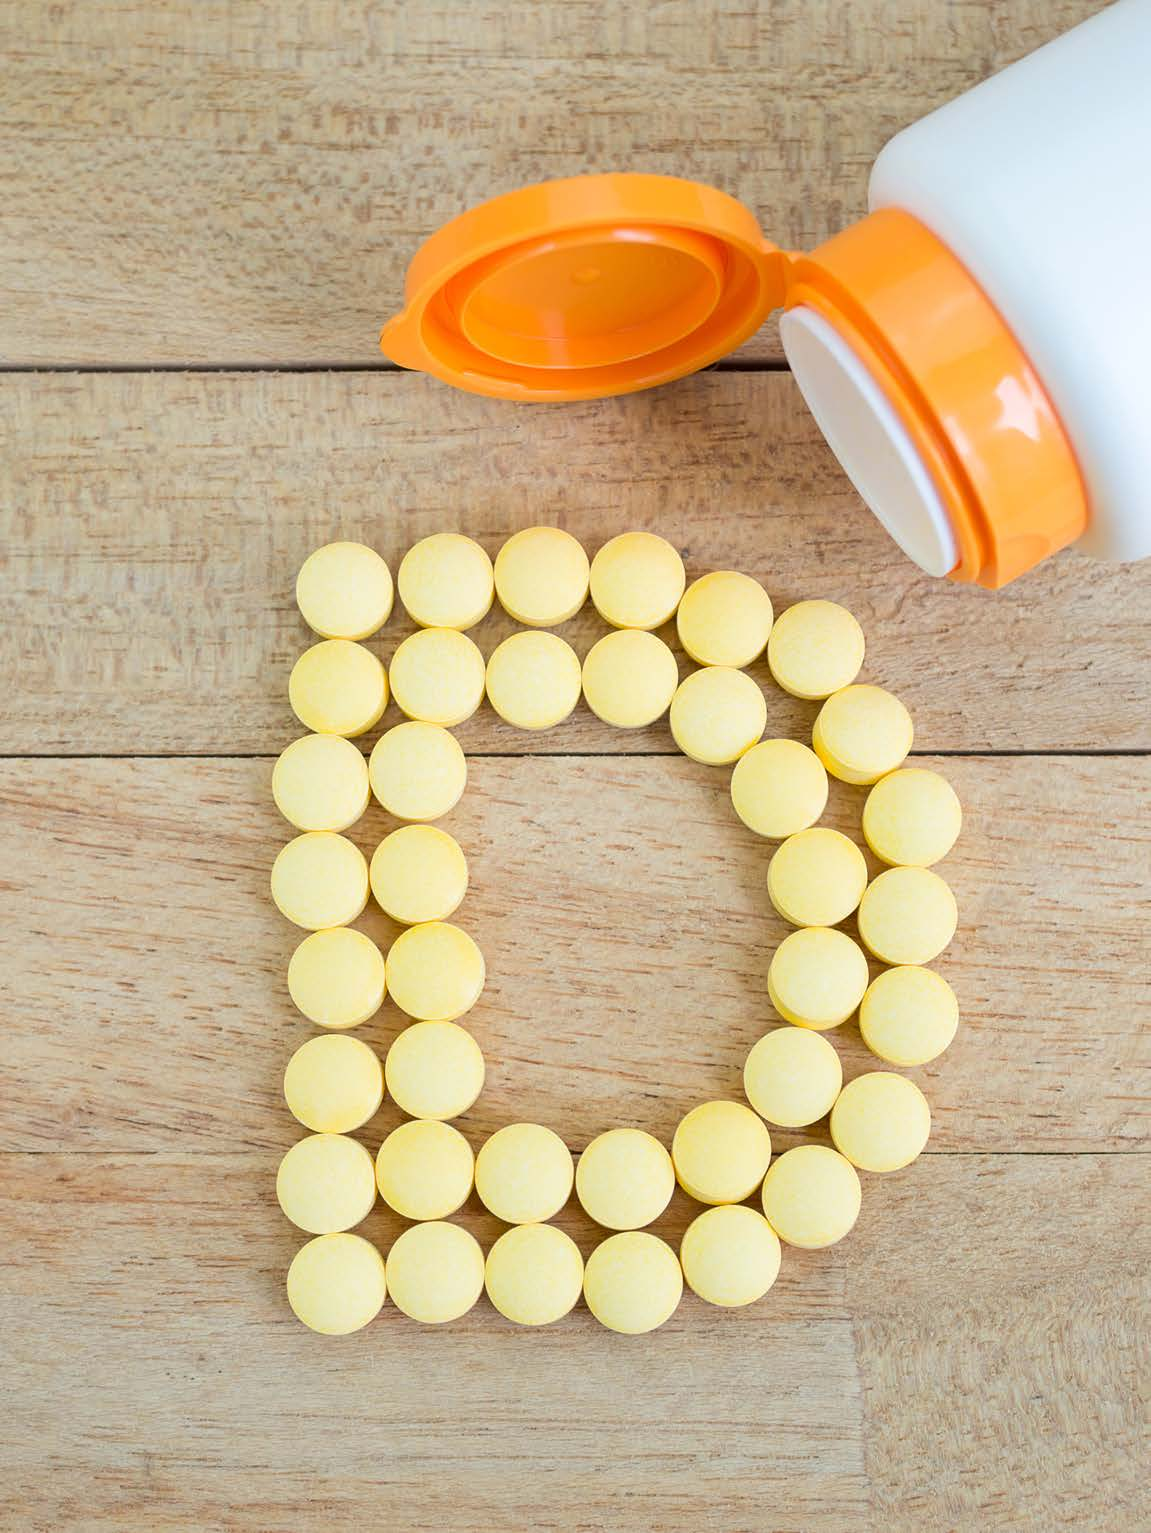 Are You Getting Enough Vitamin D